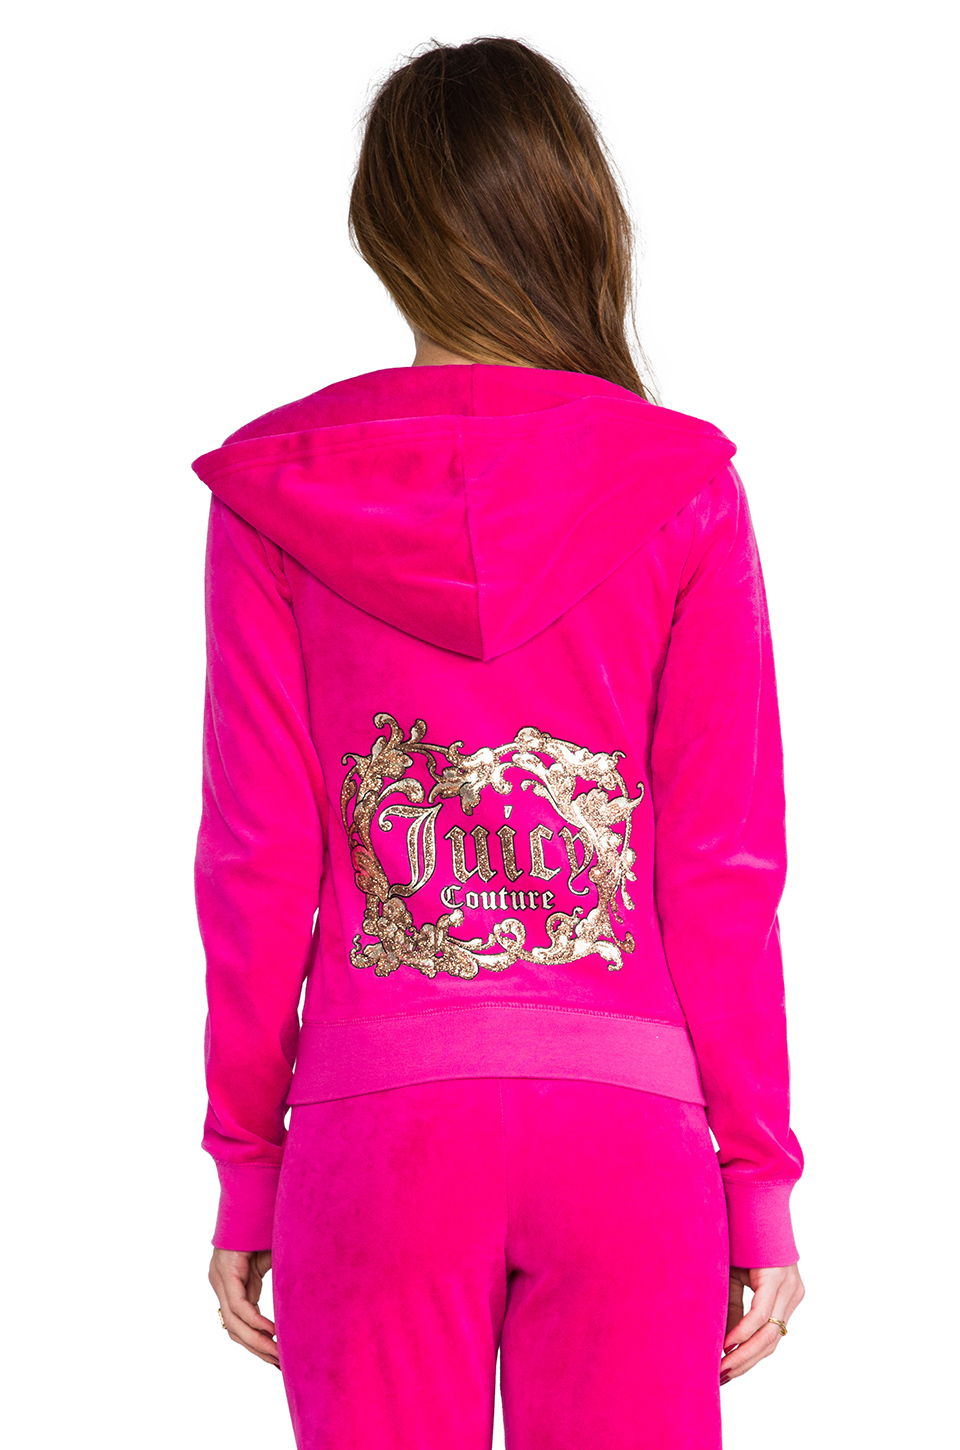 Fashion quotes juicy couture 1900s - Clothing - Dating - Landscape Change Program